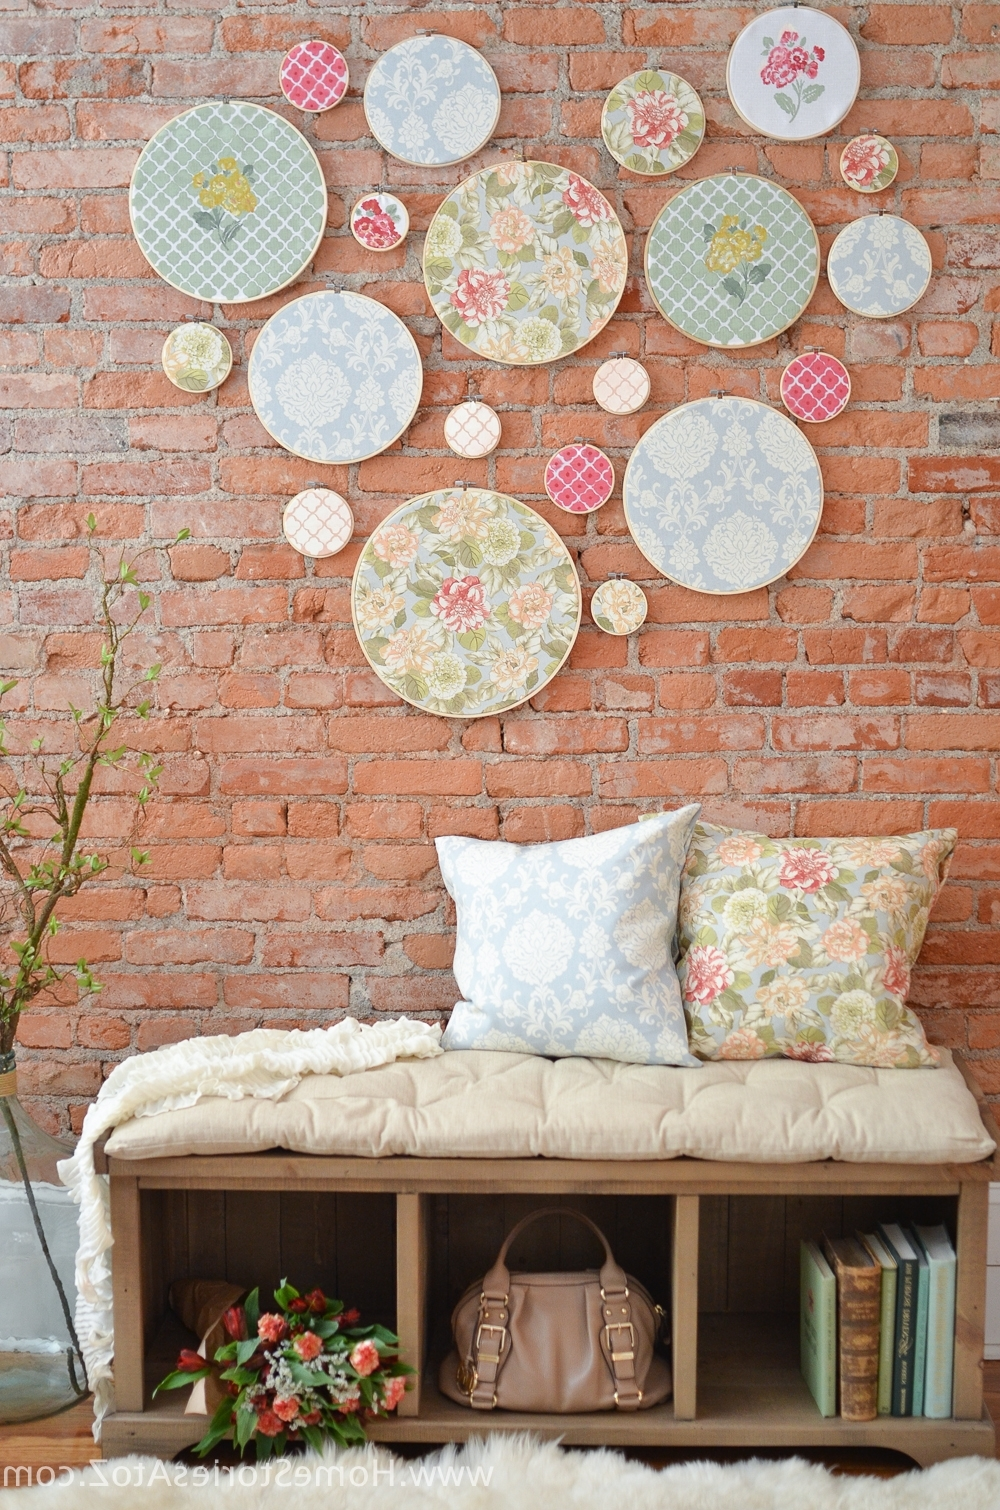 Popular Diy Embroidery Hoop Wall Art – Home Stories A To Z With Fabric Hoop Wall Art (View 13 of 15)